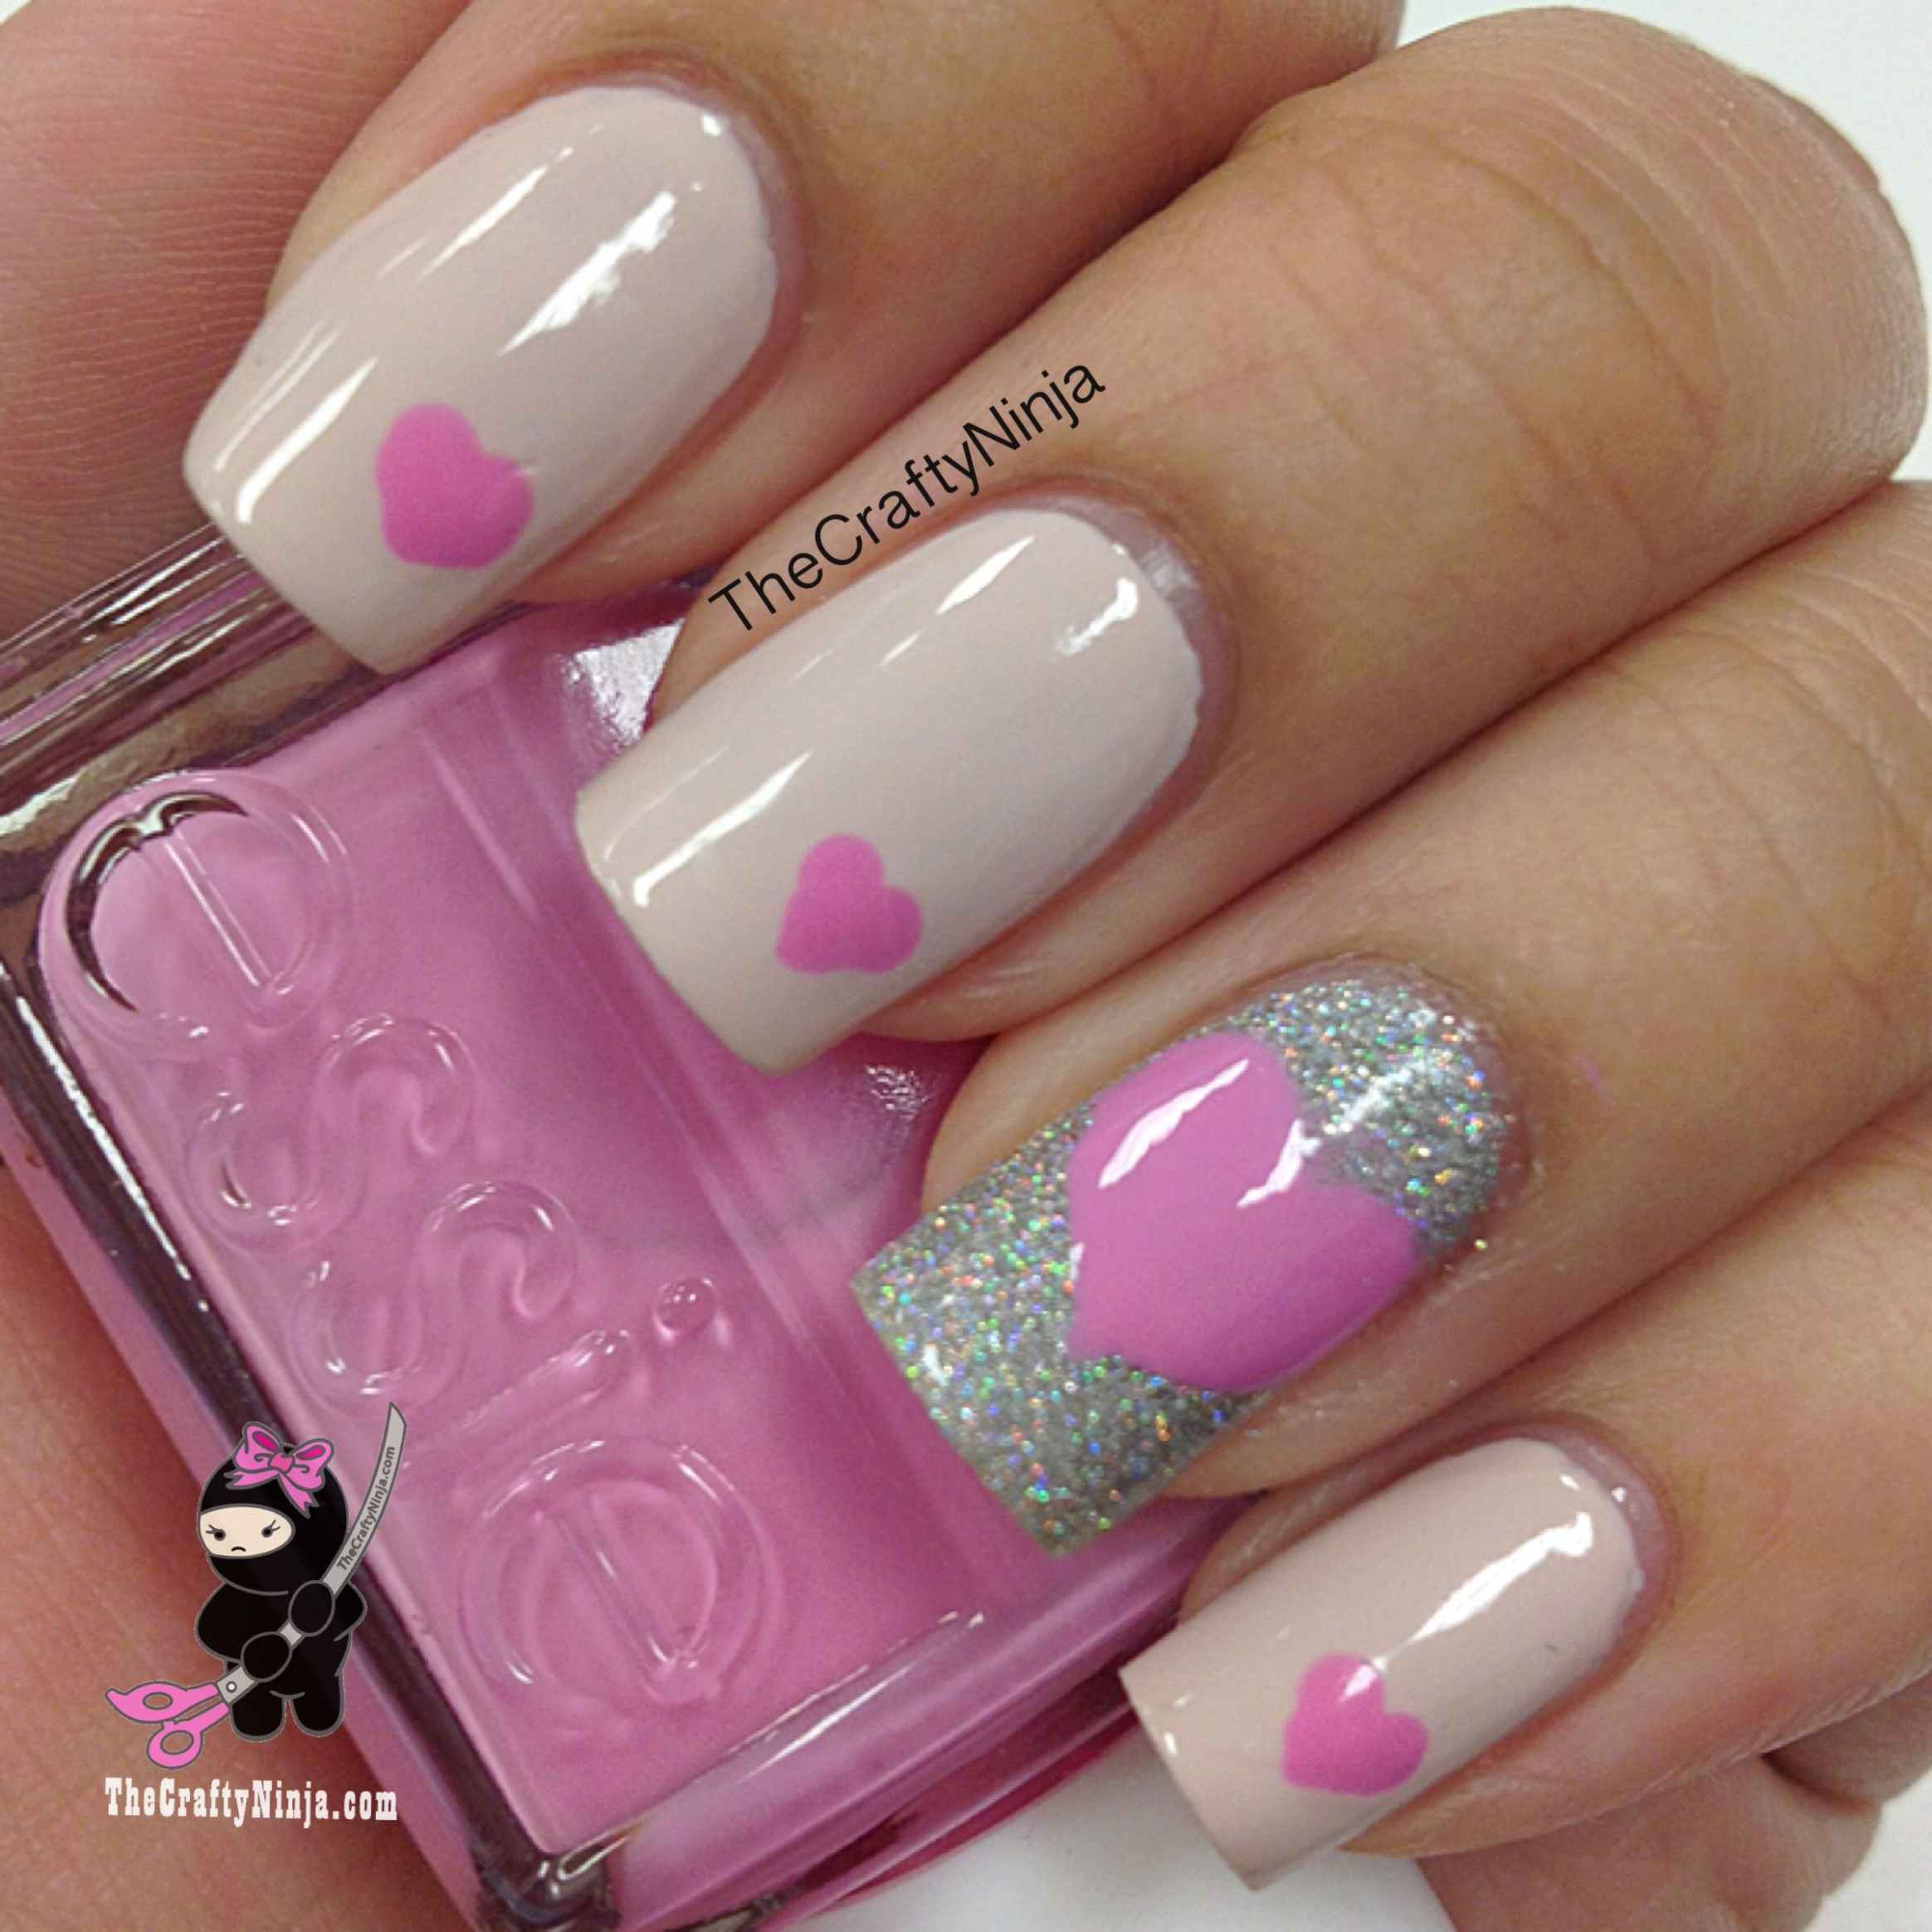 11 Valentine's Day Nail Art Designs We Love - More  Heart nails